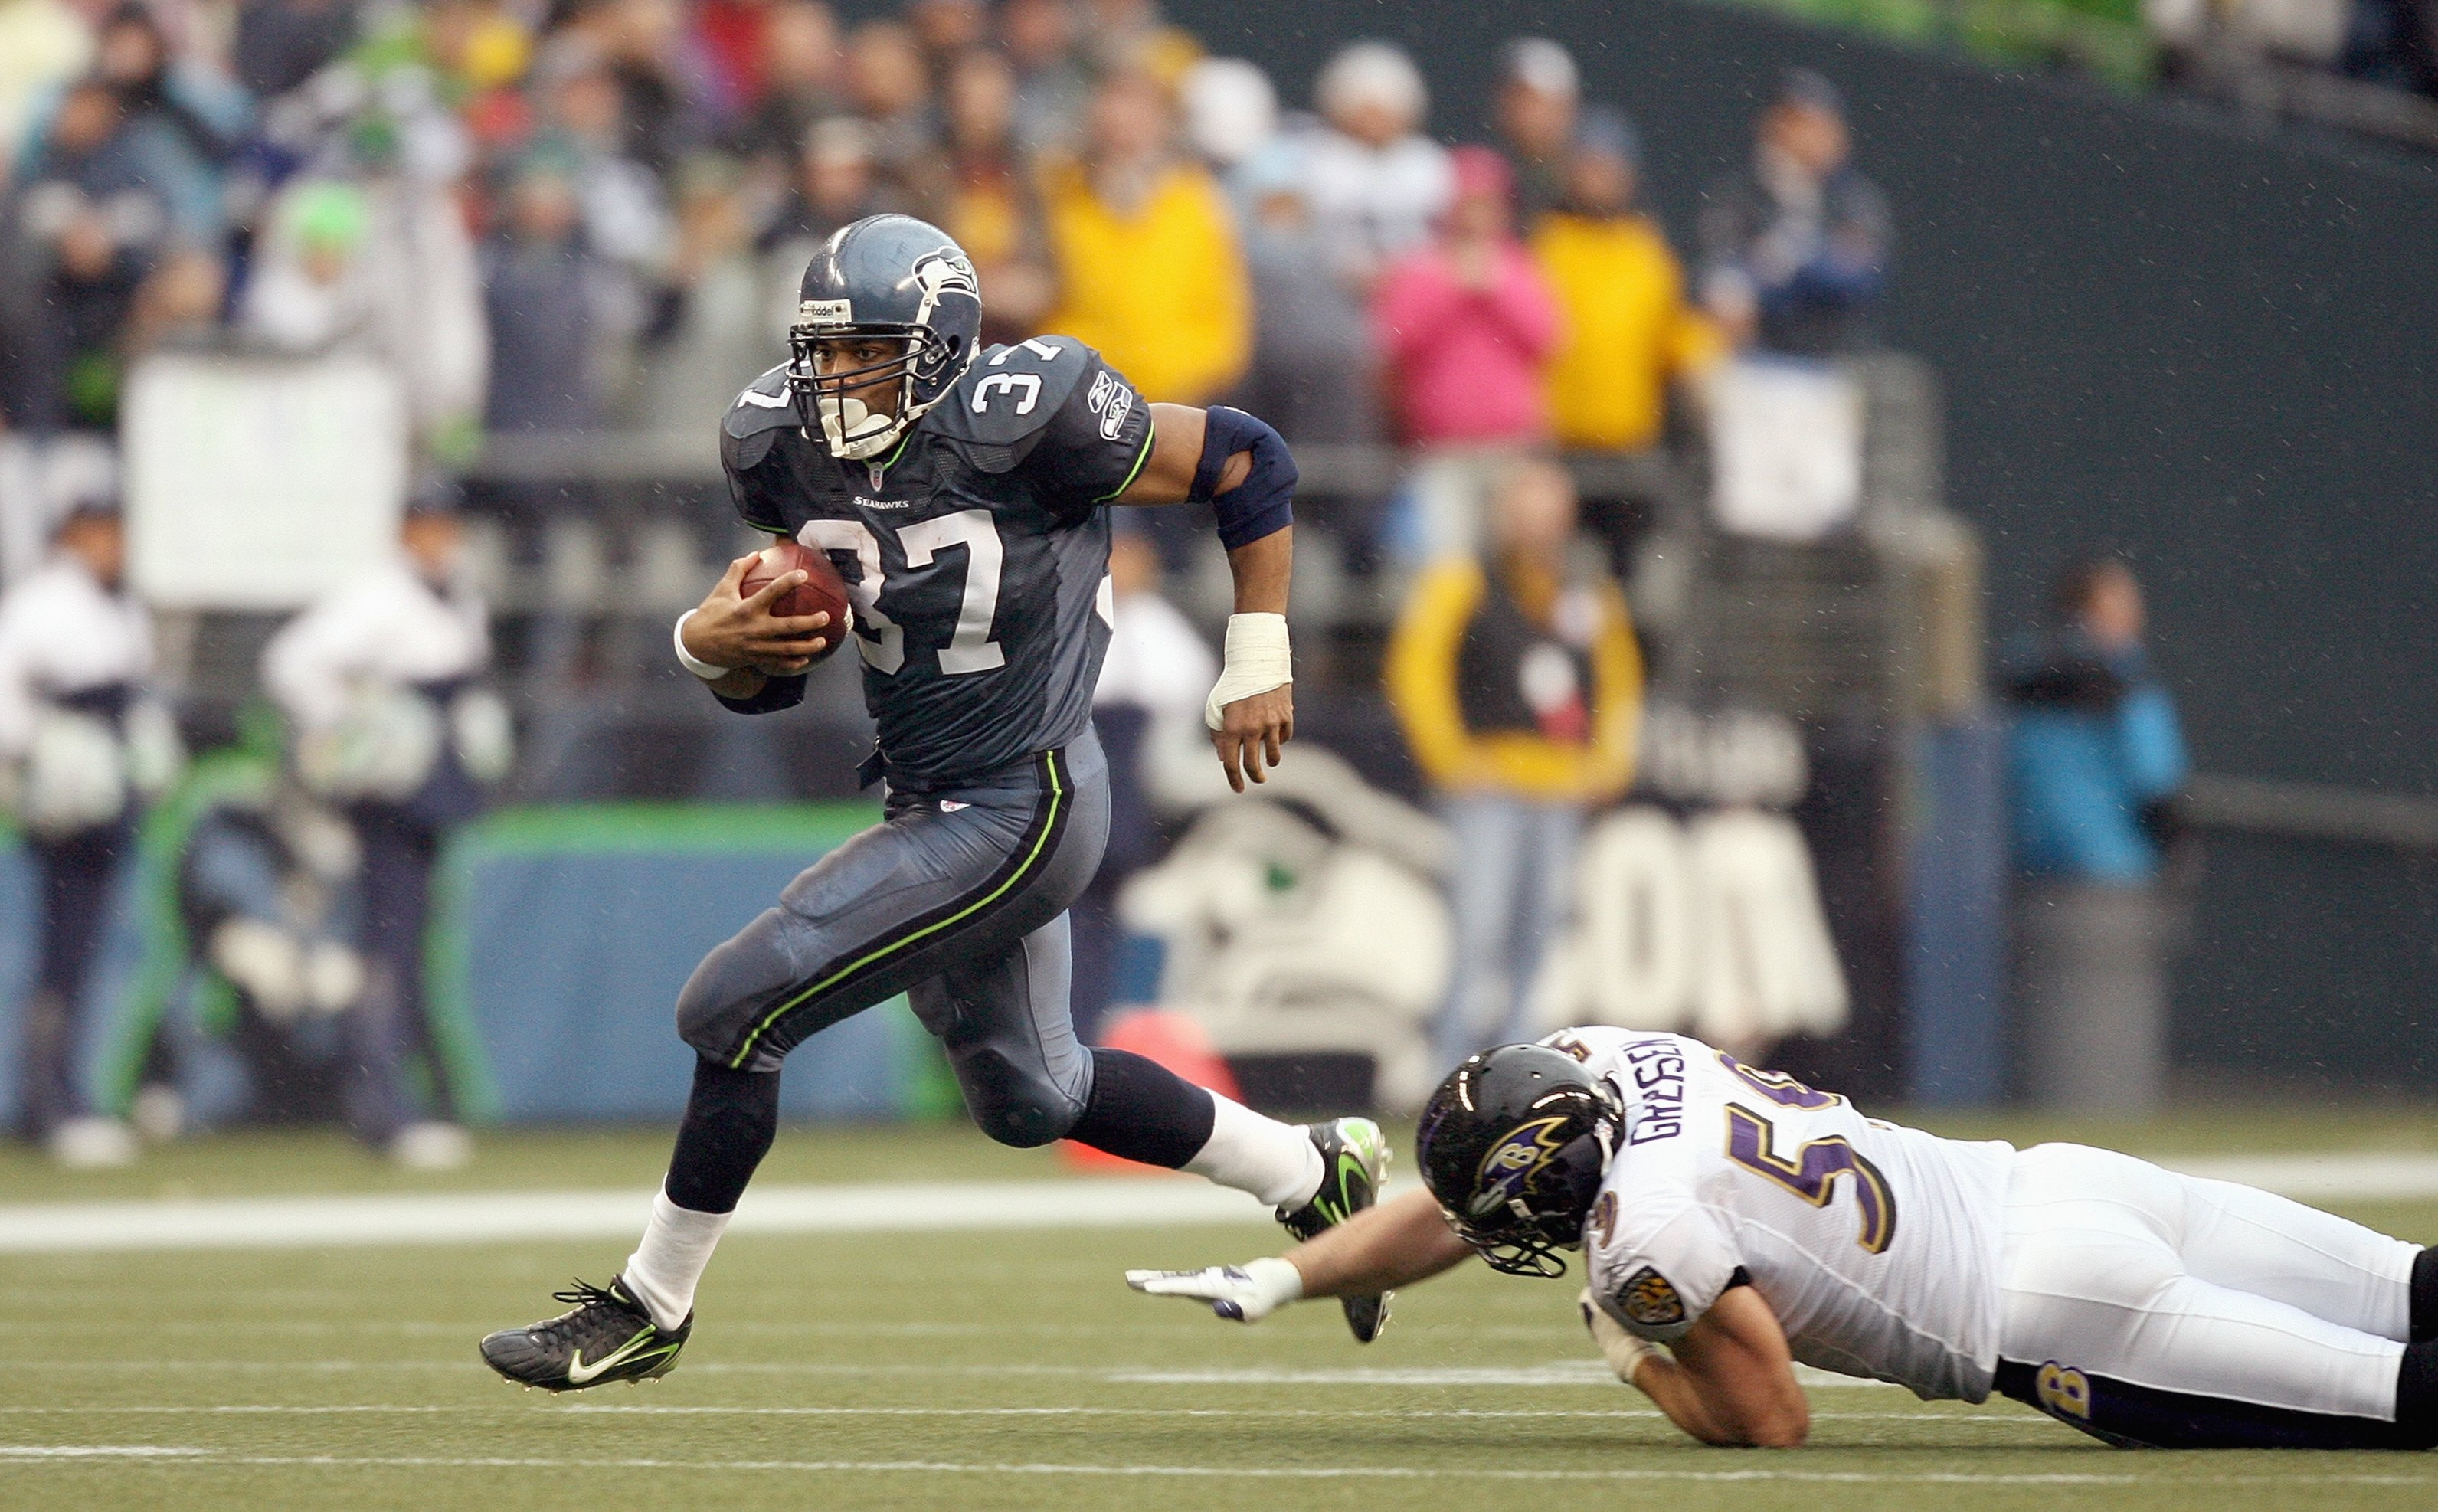 SEATTLE - DECEMBER 23: Shaun Alexander #37 of the Seattle Seahawks runs the ball during the game against the Baltimore Ravens at Qwest Field on December 23, 2007 in Seattle, Washington. The Seahawks defeated the Ravens 27-6. (Photo by Otto Greule Jr/Getty